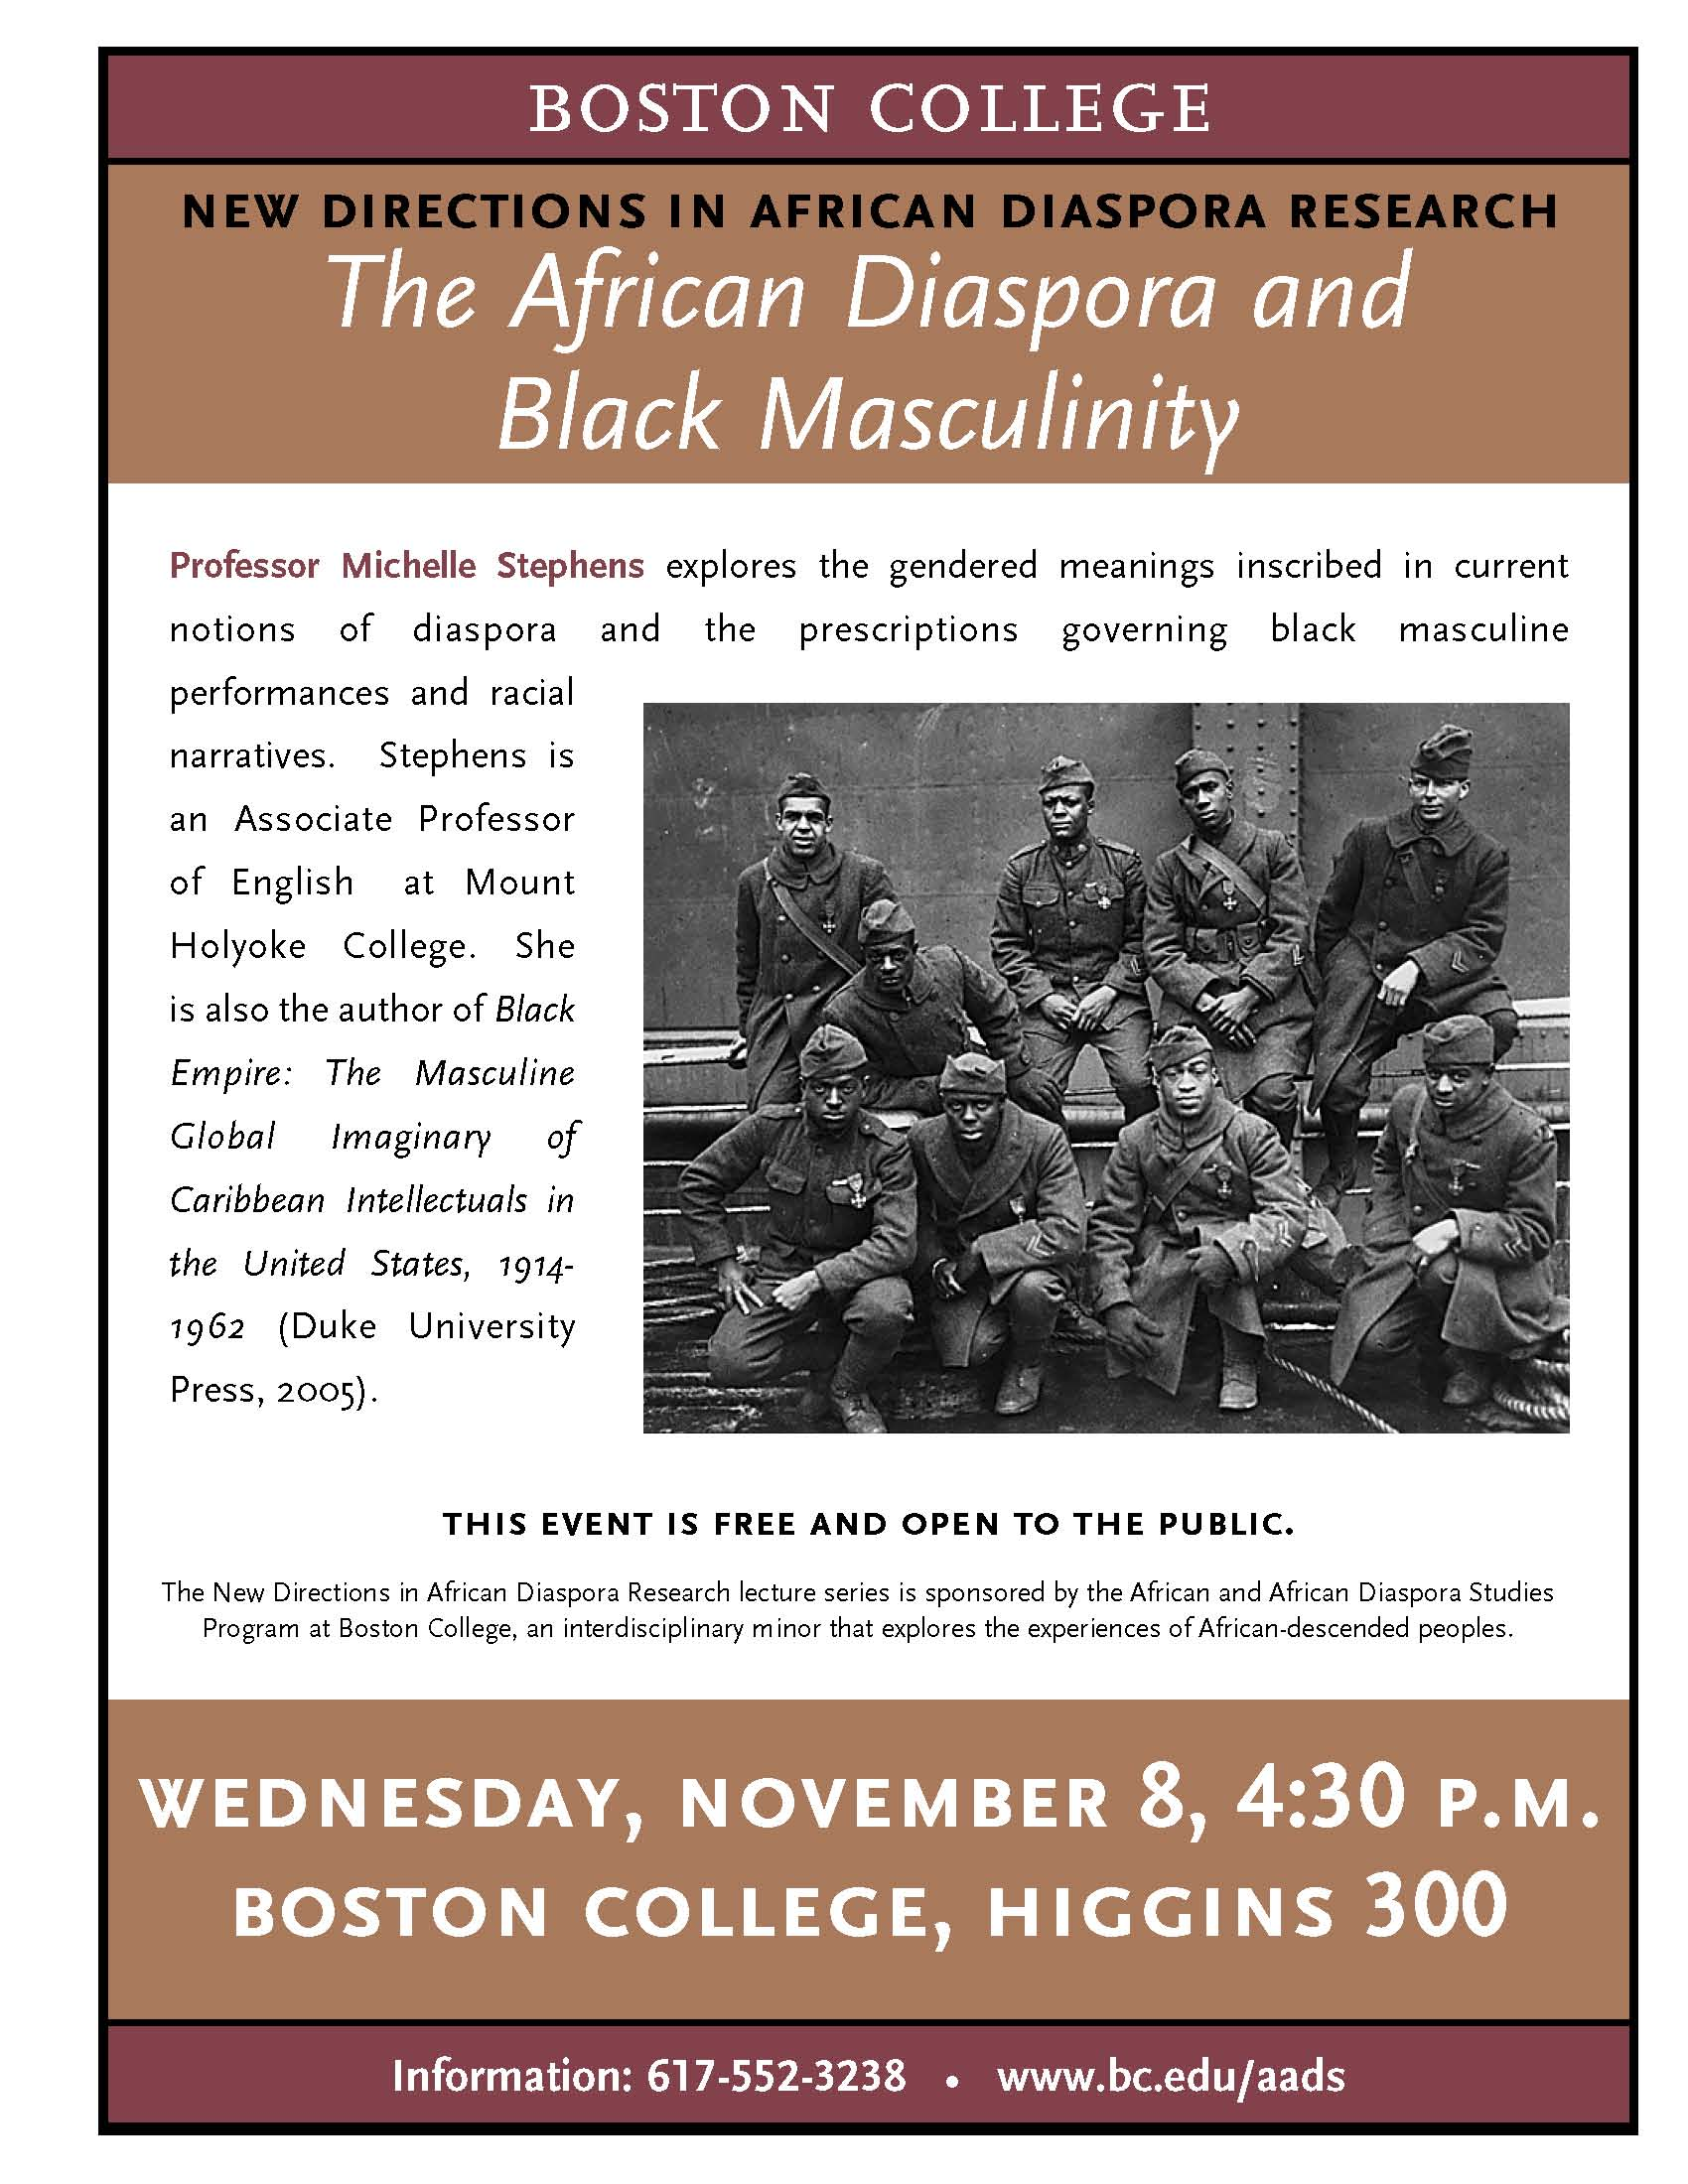 Promotional Poster: The African Diaspora and Black Masculinity